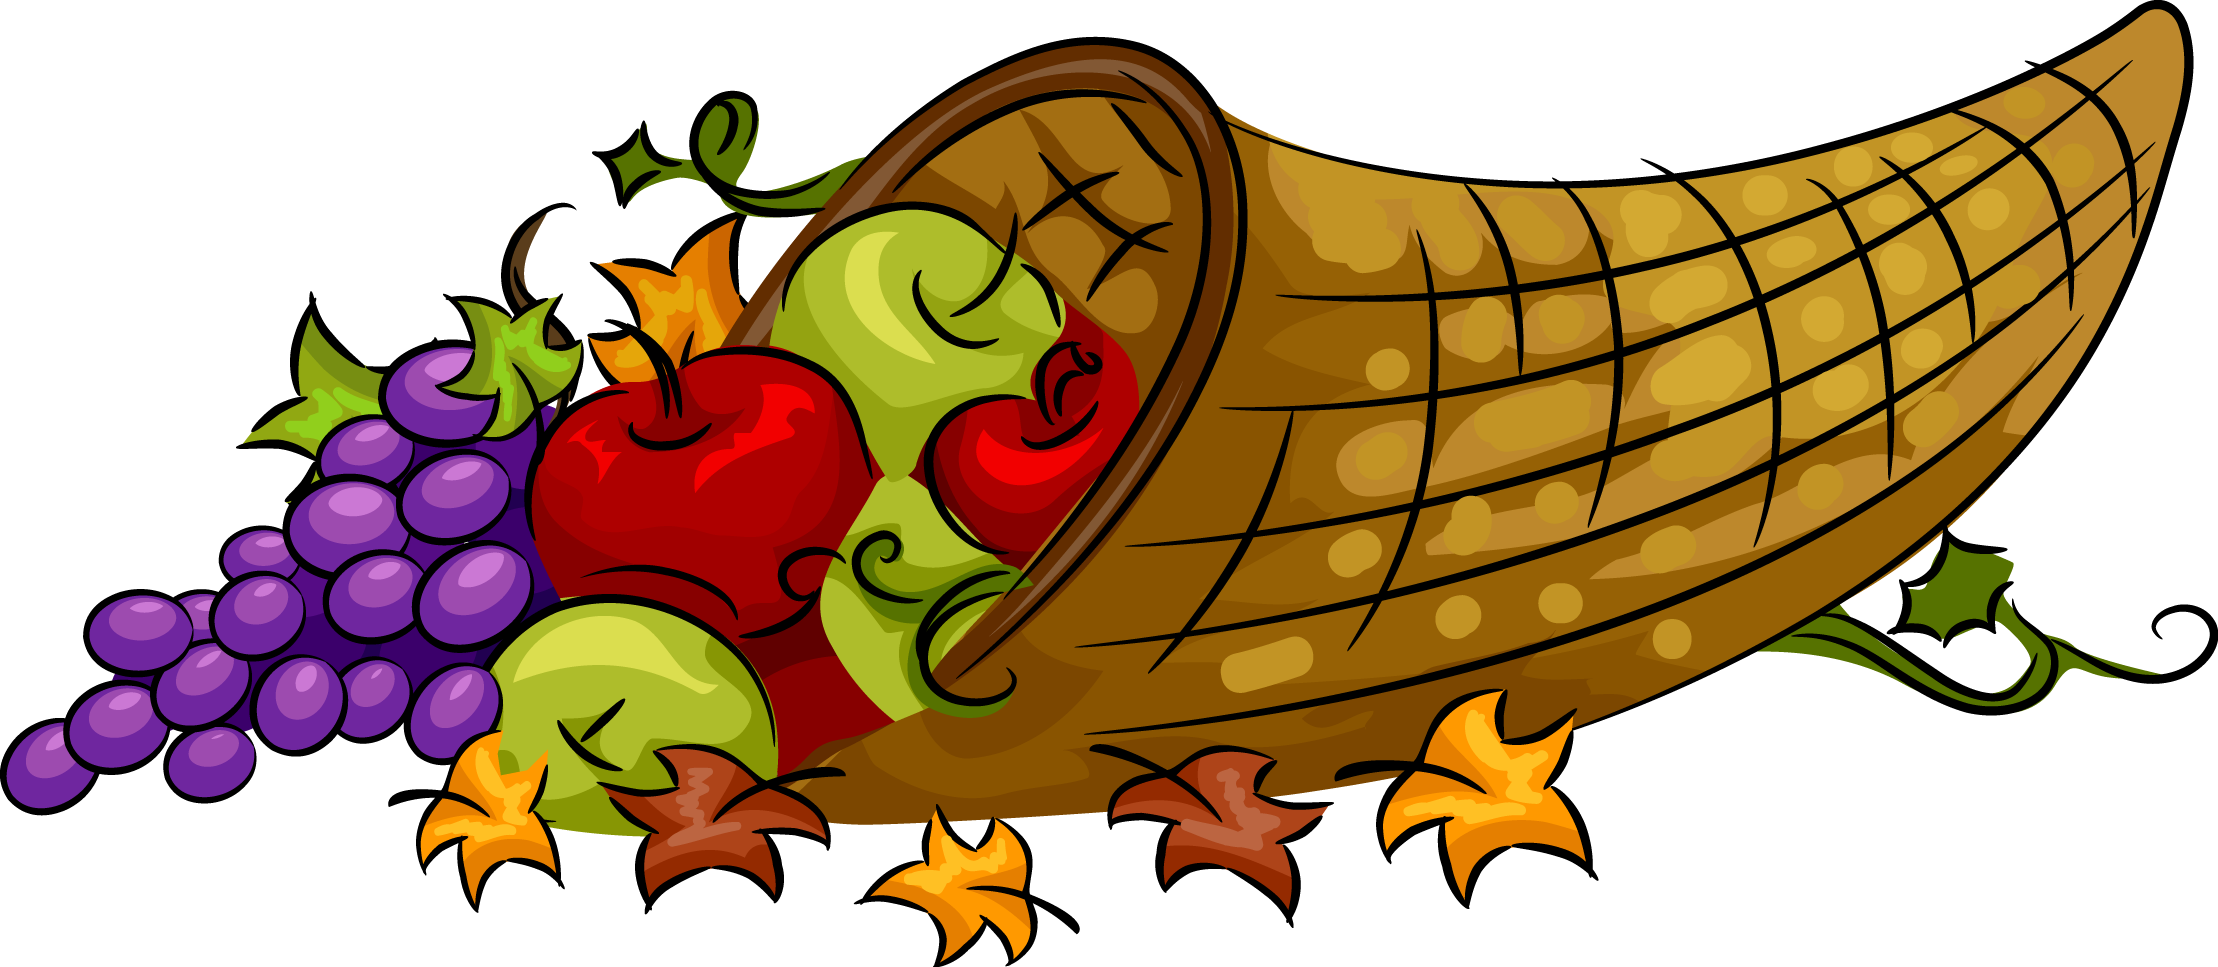 Thanksgiving banquet clipart images graphic Thanksgiving Feast Clipart at GetDrawings.com   Free for personal ... graphic